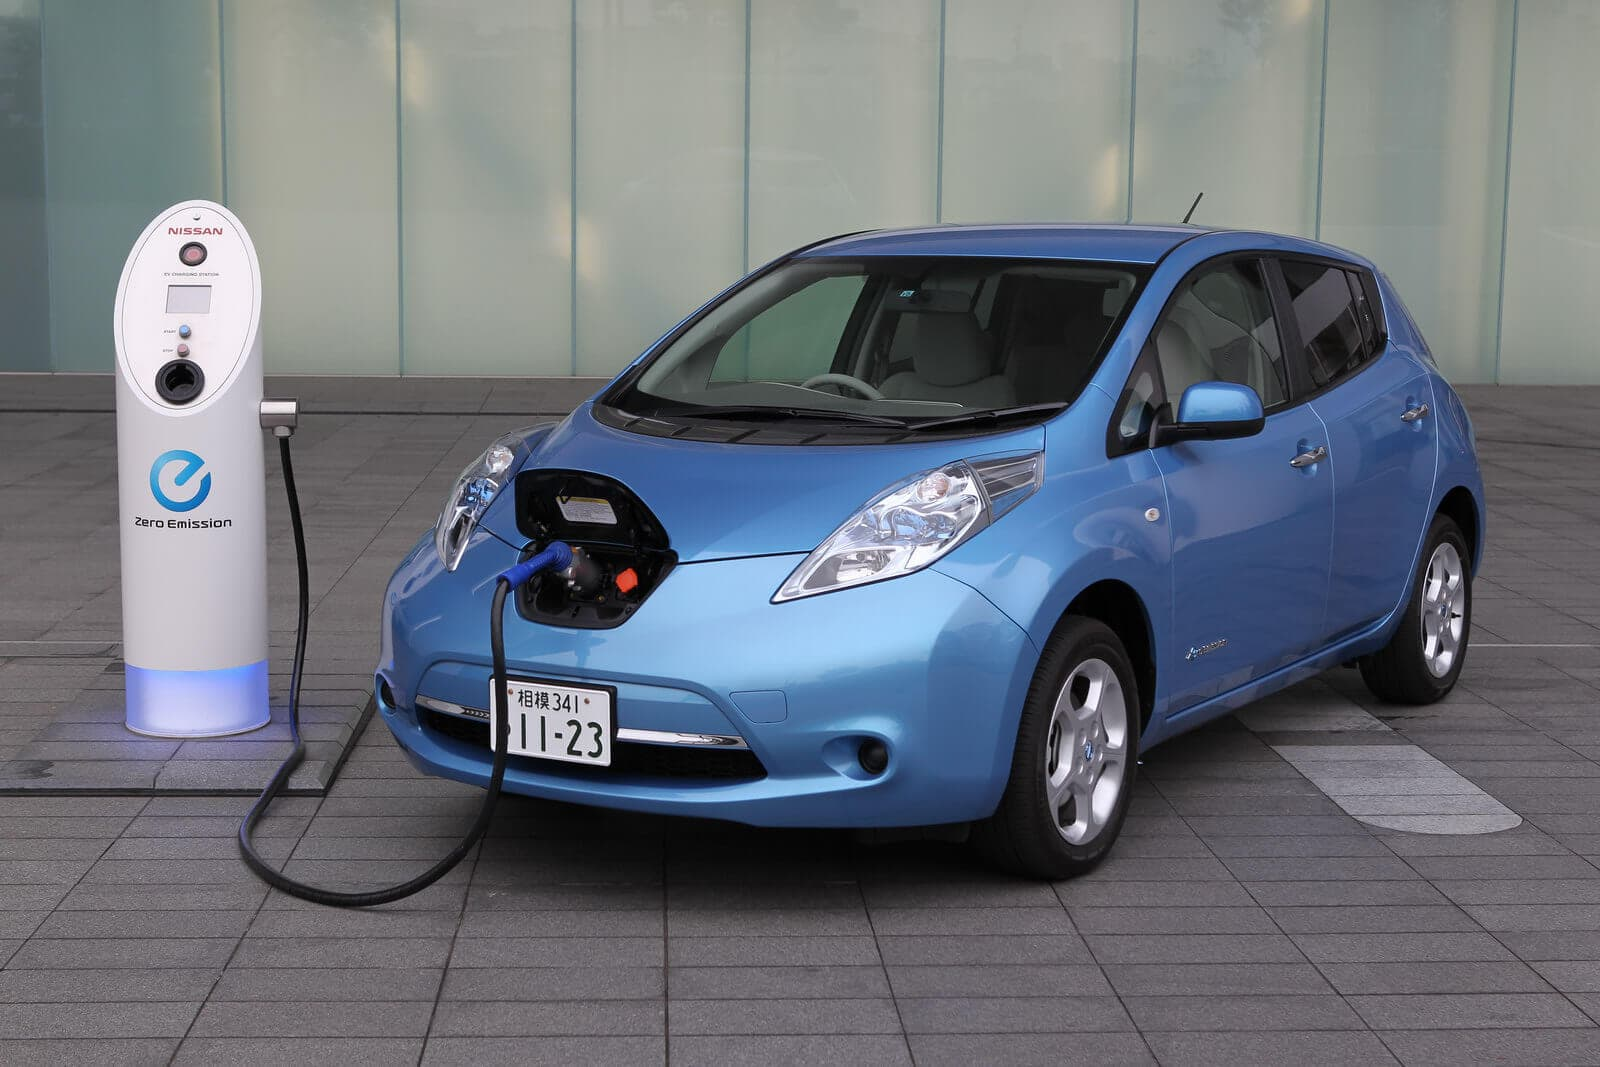 Preserving the Environment With Electric Rental Cars